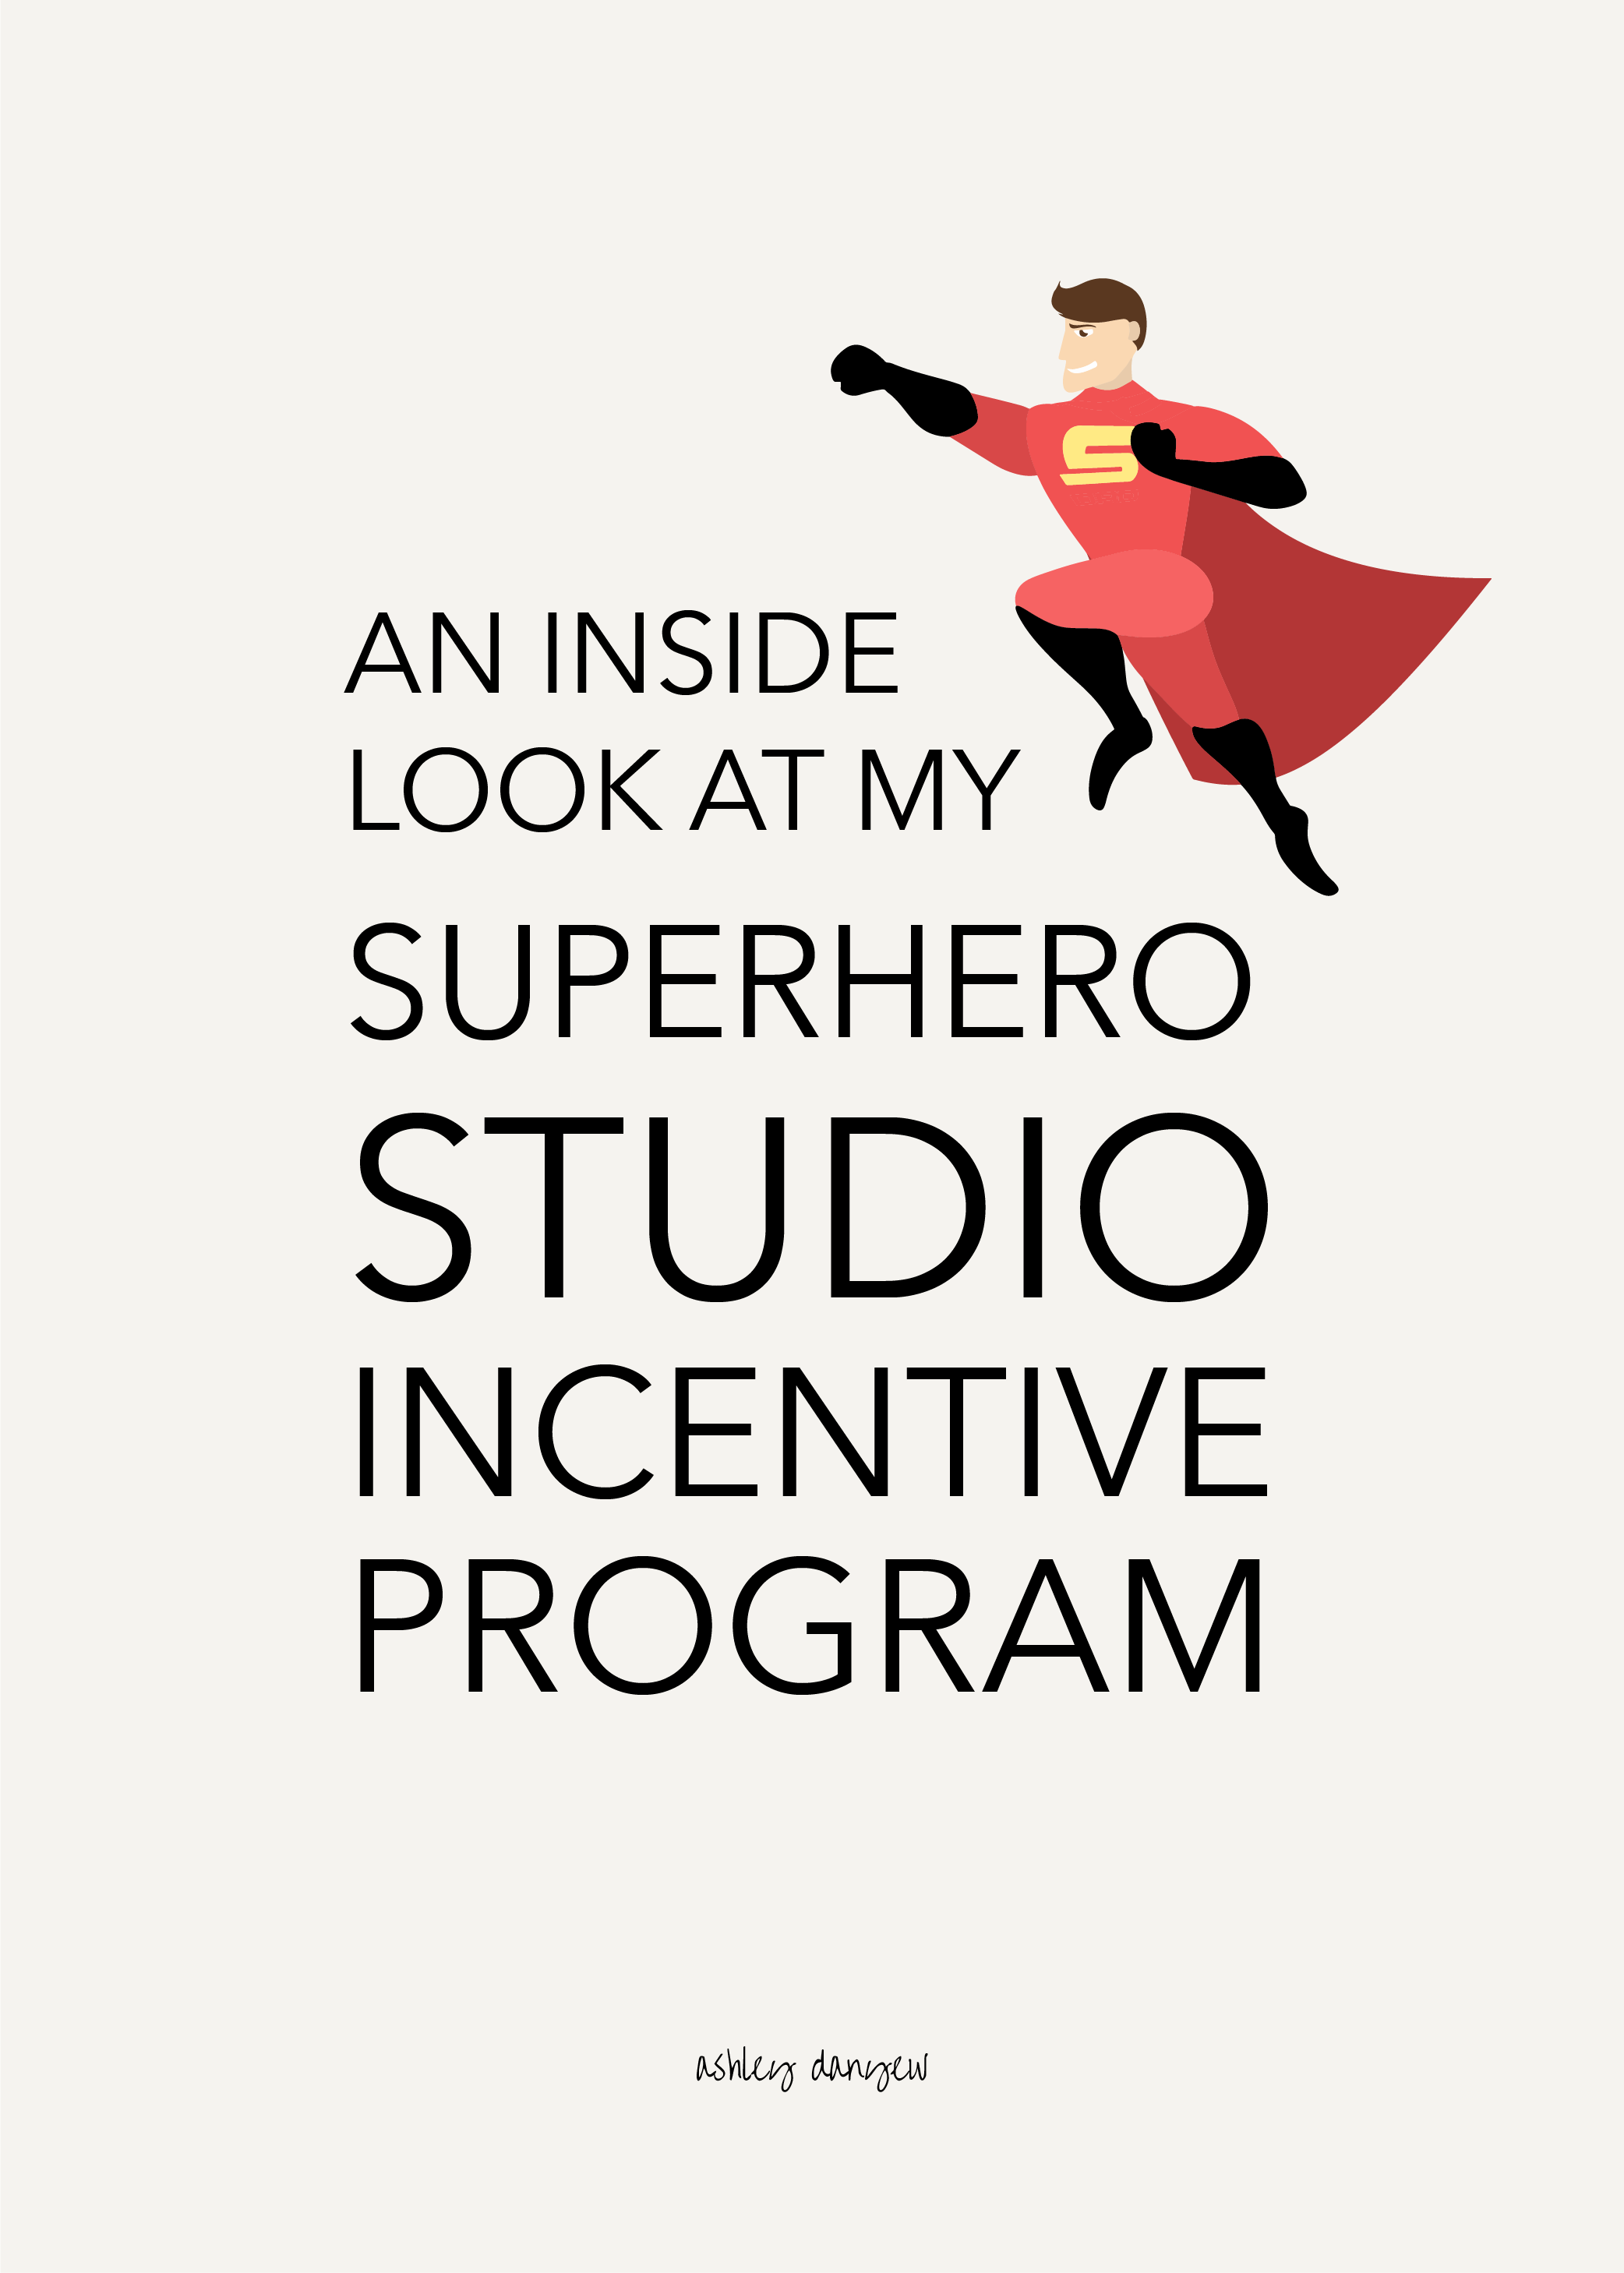 An Inside Look at My Superhero Studio Incentive Program